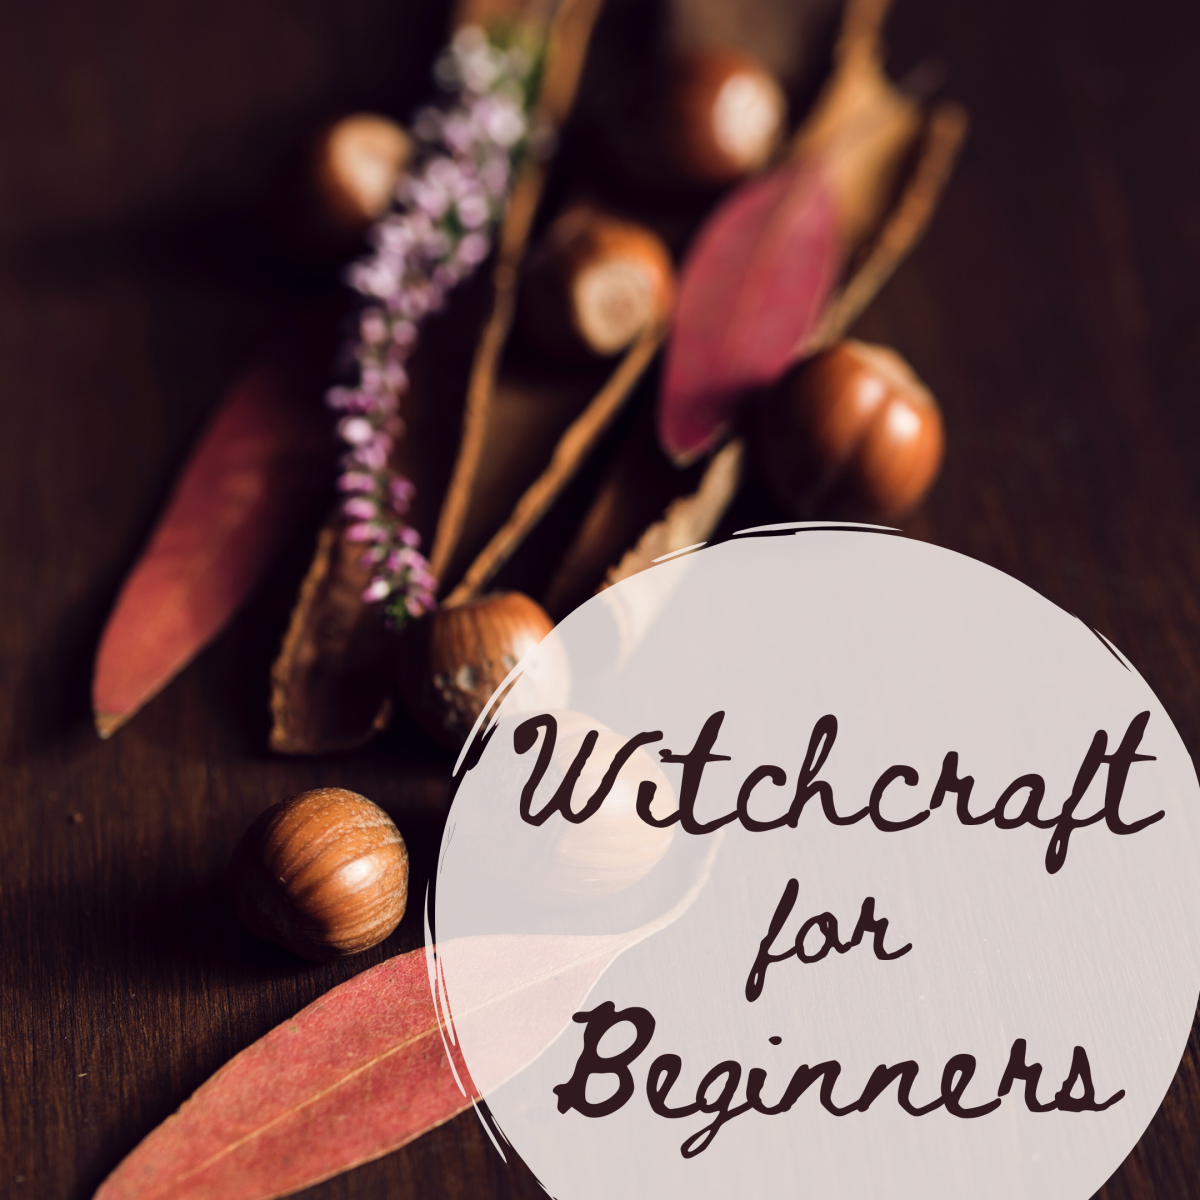 7 More Mistakes Made by Beginning Witches